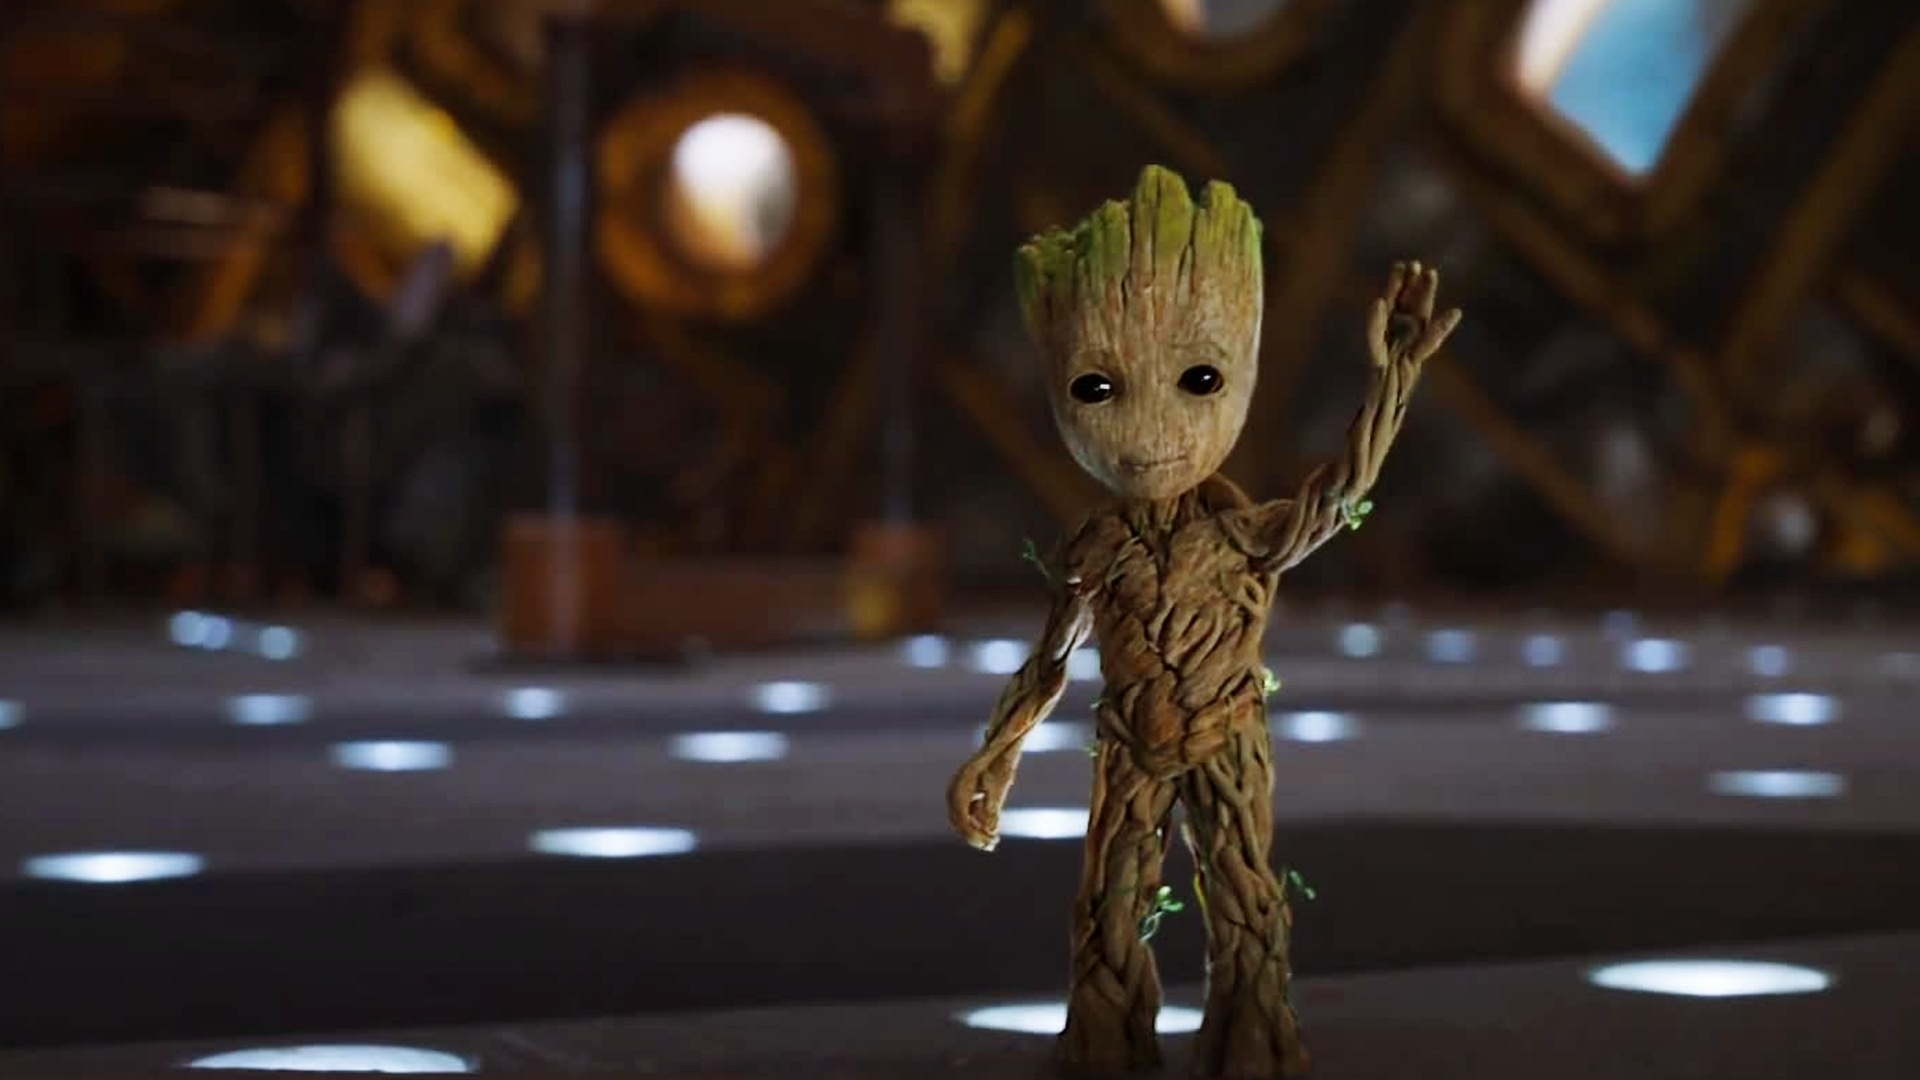 guardians of the galaxy baby groot live wallpaper - wallpaper hd gallery